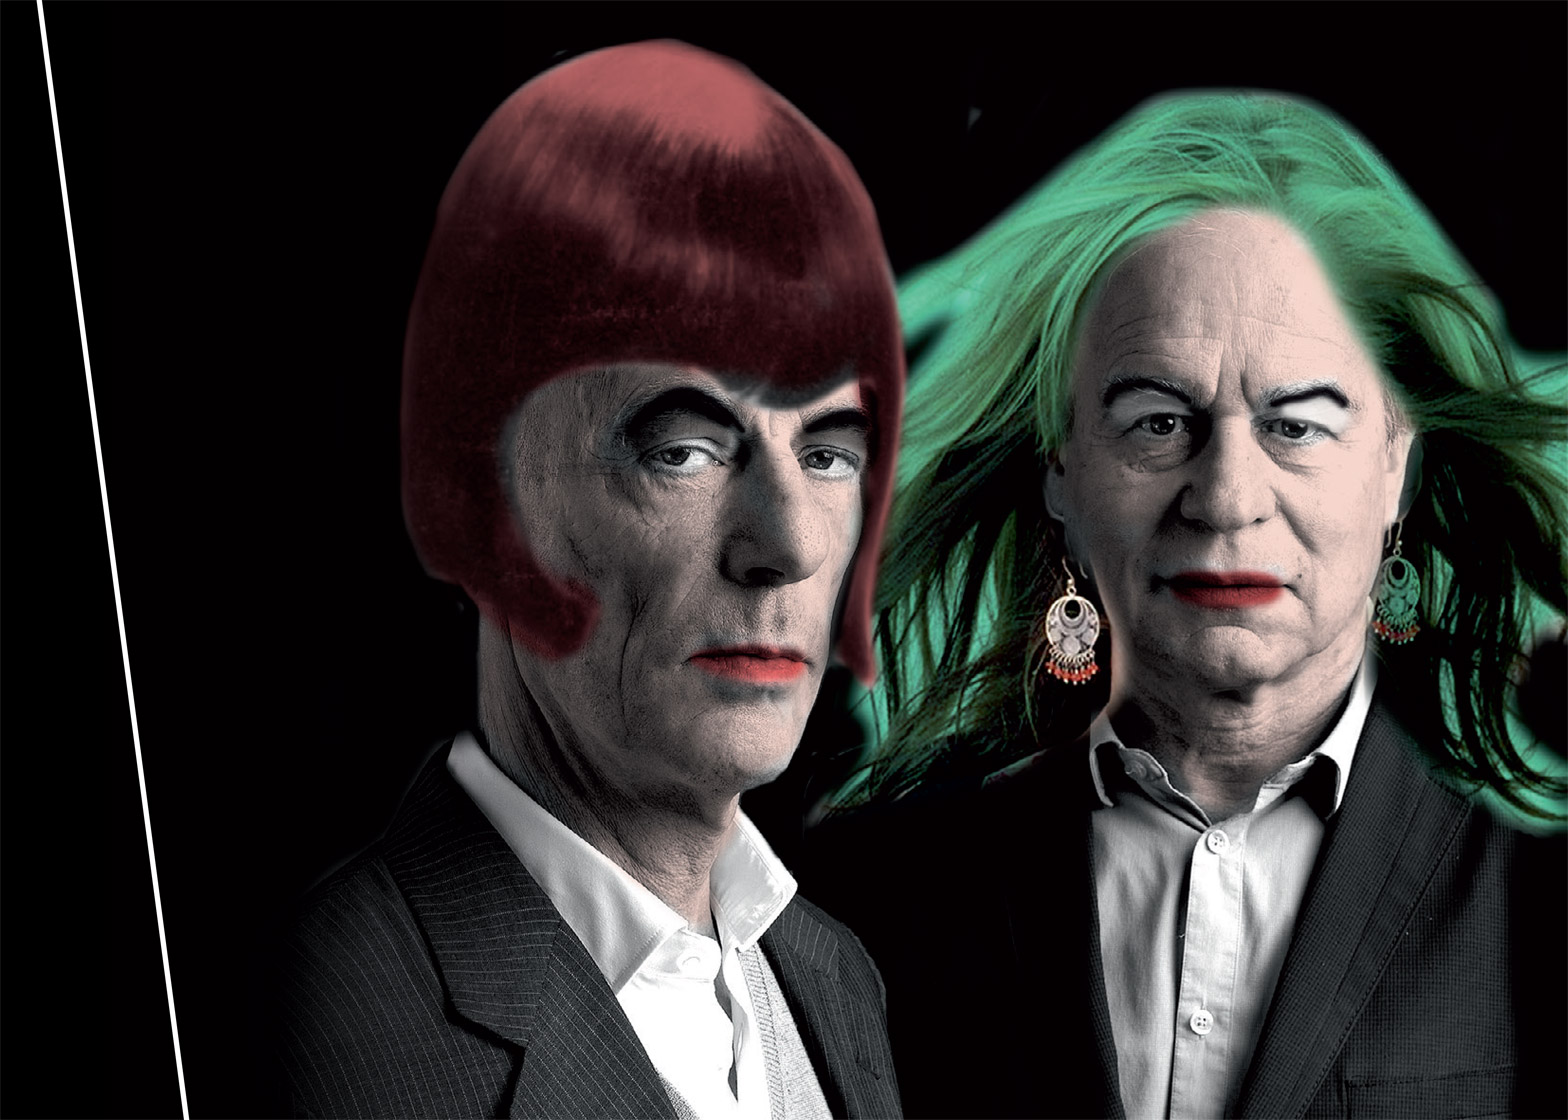 Herzog and de Meuron sport colourful wigs and lipstick to promote a series of talks about gender inequality in architecture